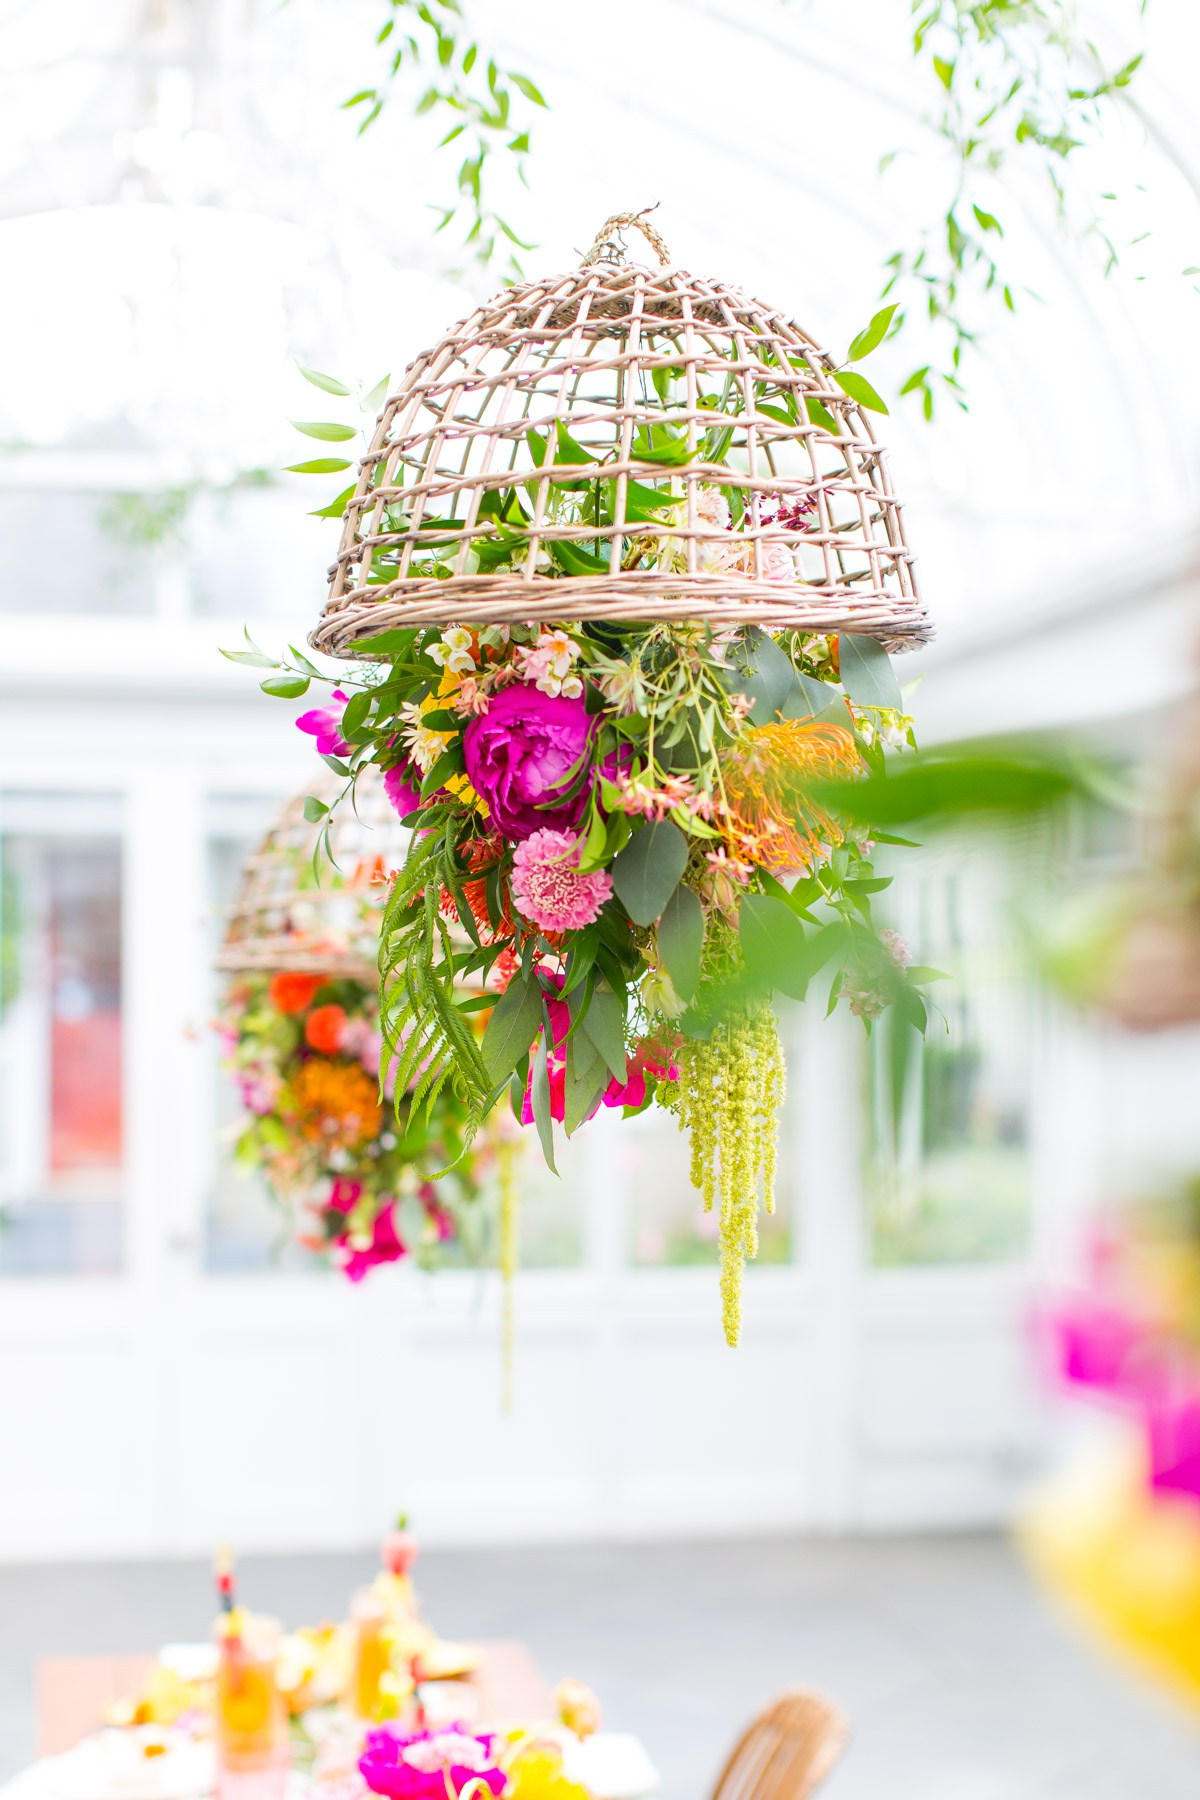 Celebrate the summer with a flourishing garden party Bloomifique